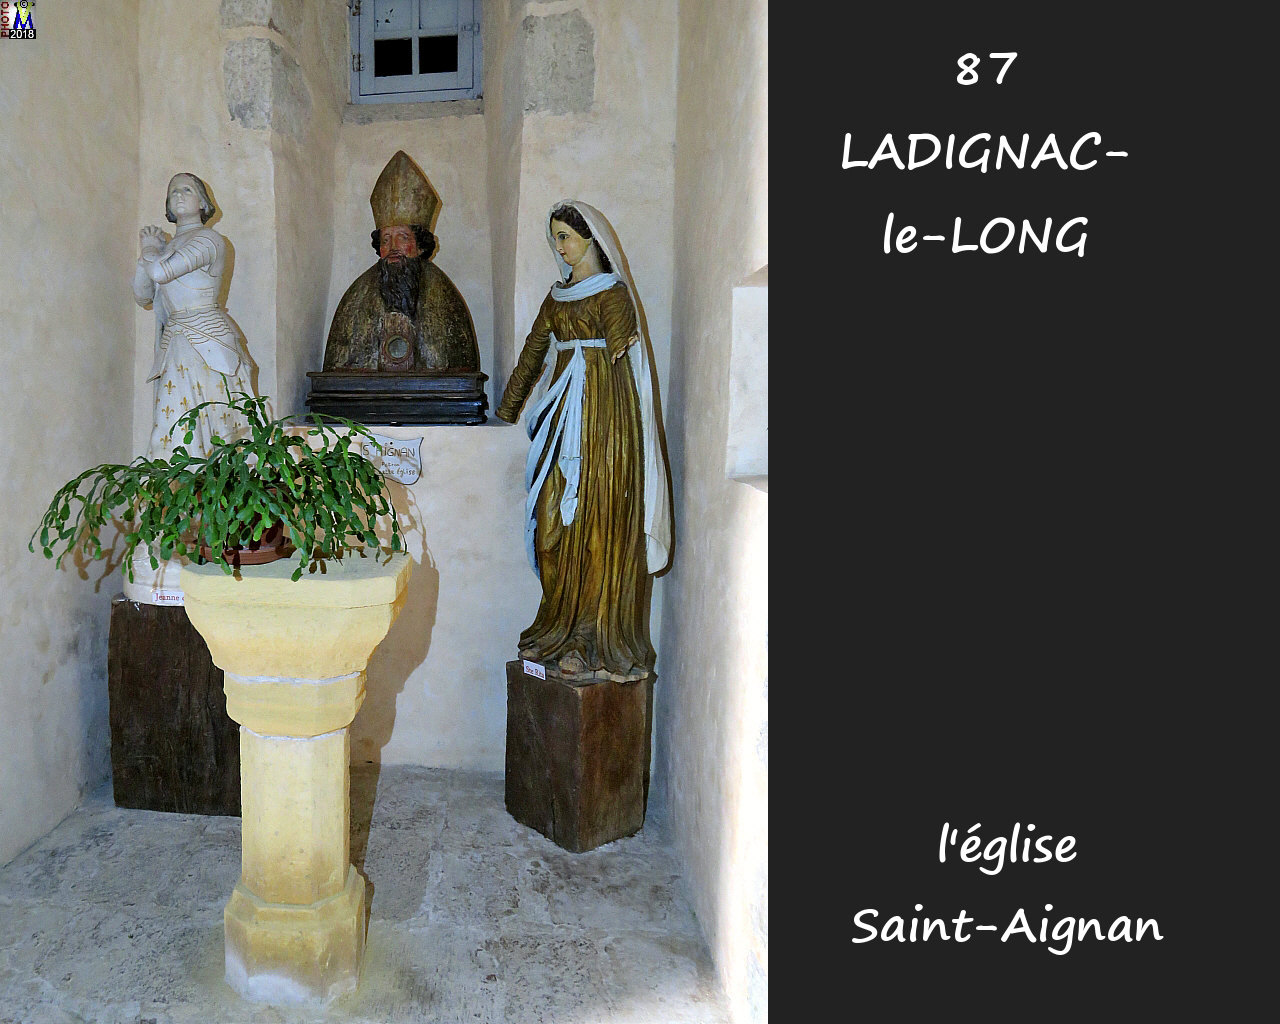 87LADIGNAC-LONG_eglise_230.jpg